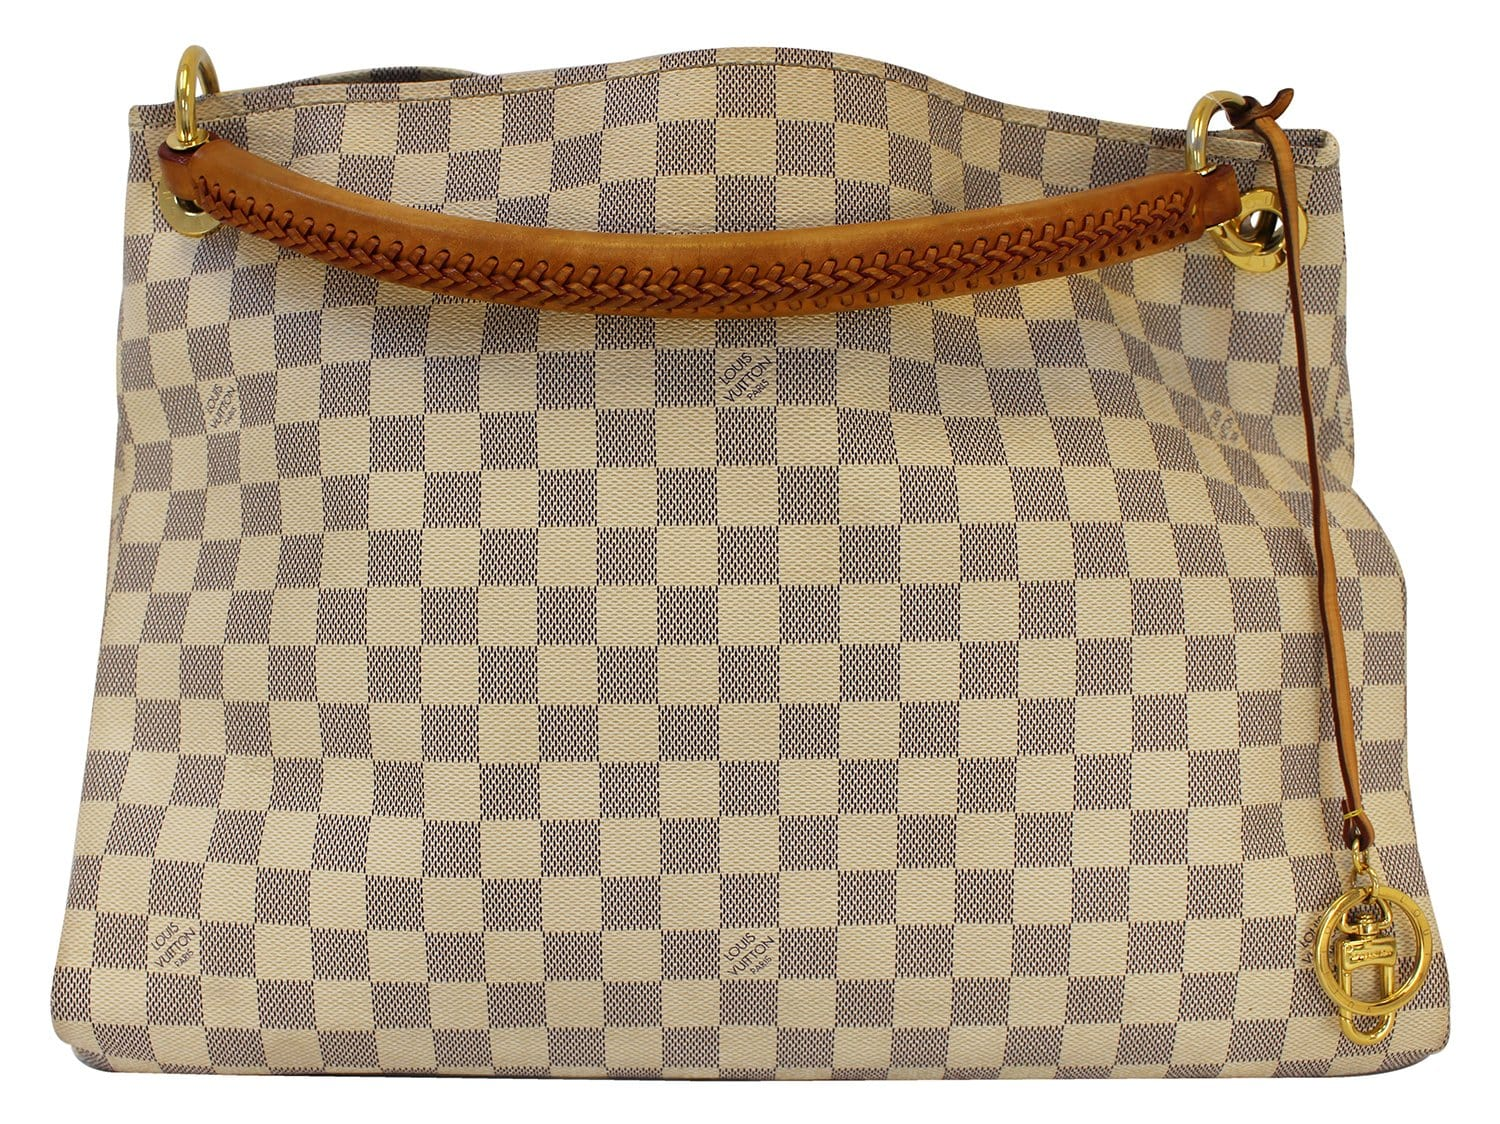 2fde5878aaa9 Authentic LOUIS VUITTON Artsy MM Damier Azur Shoulder Handbag E3304